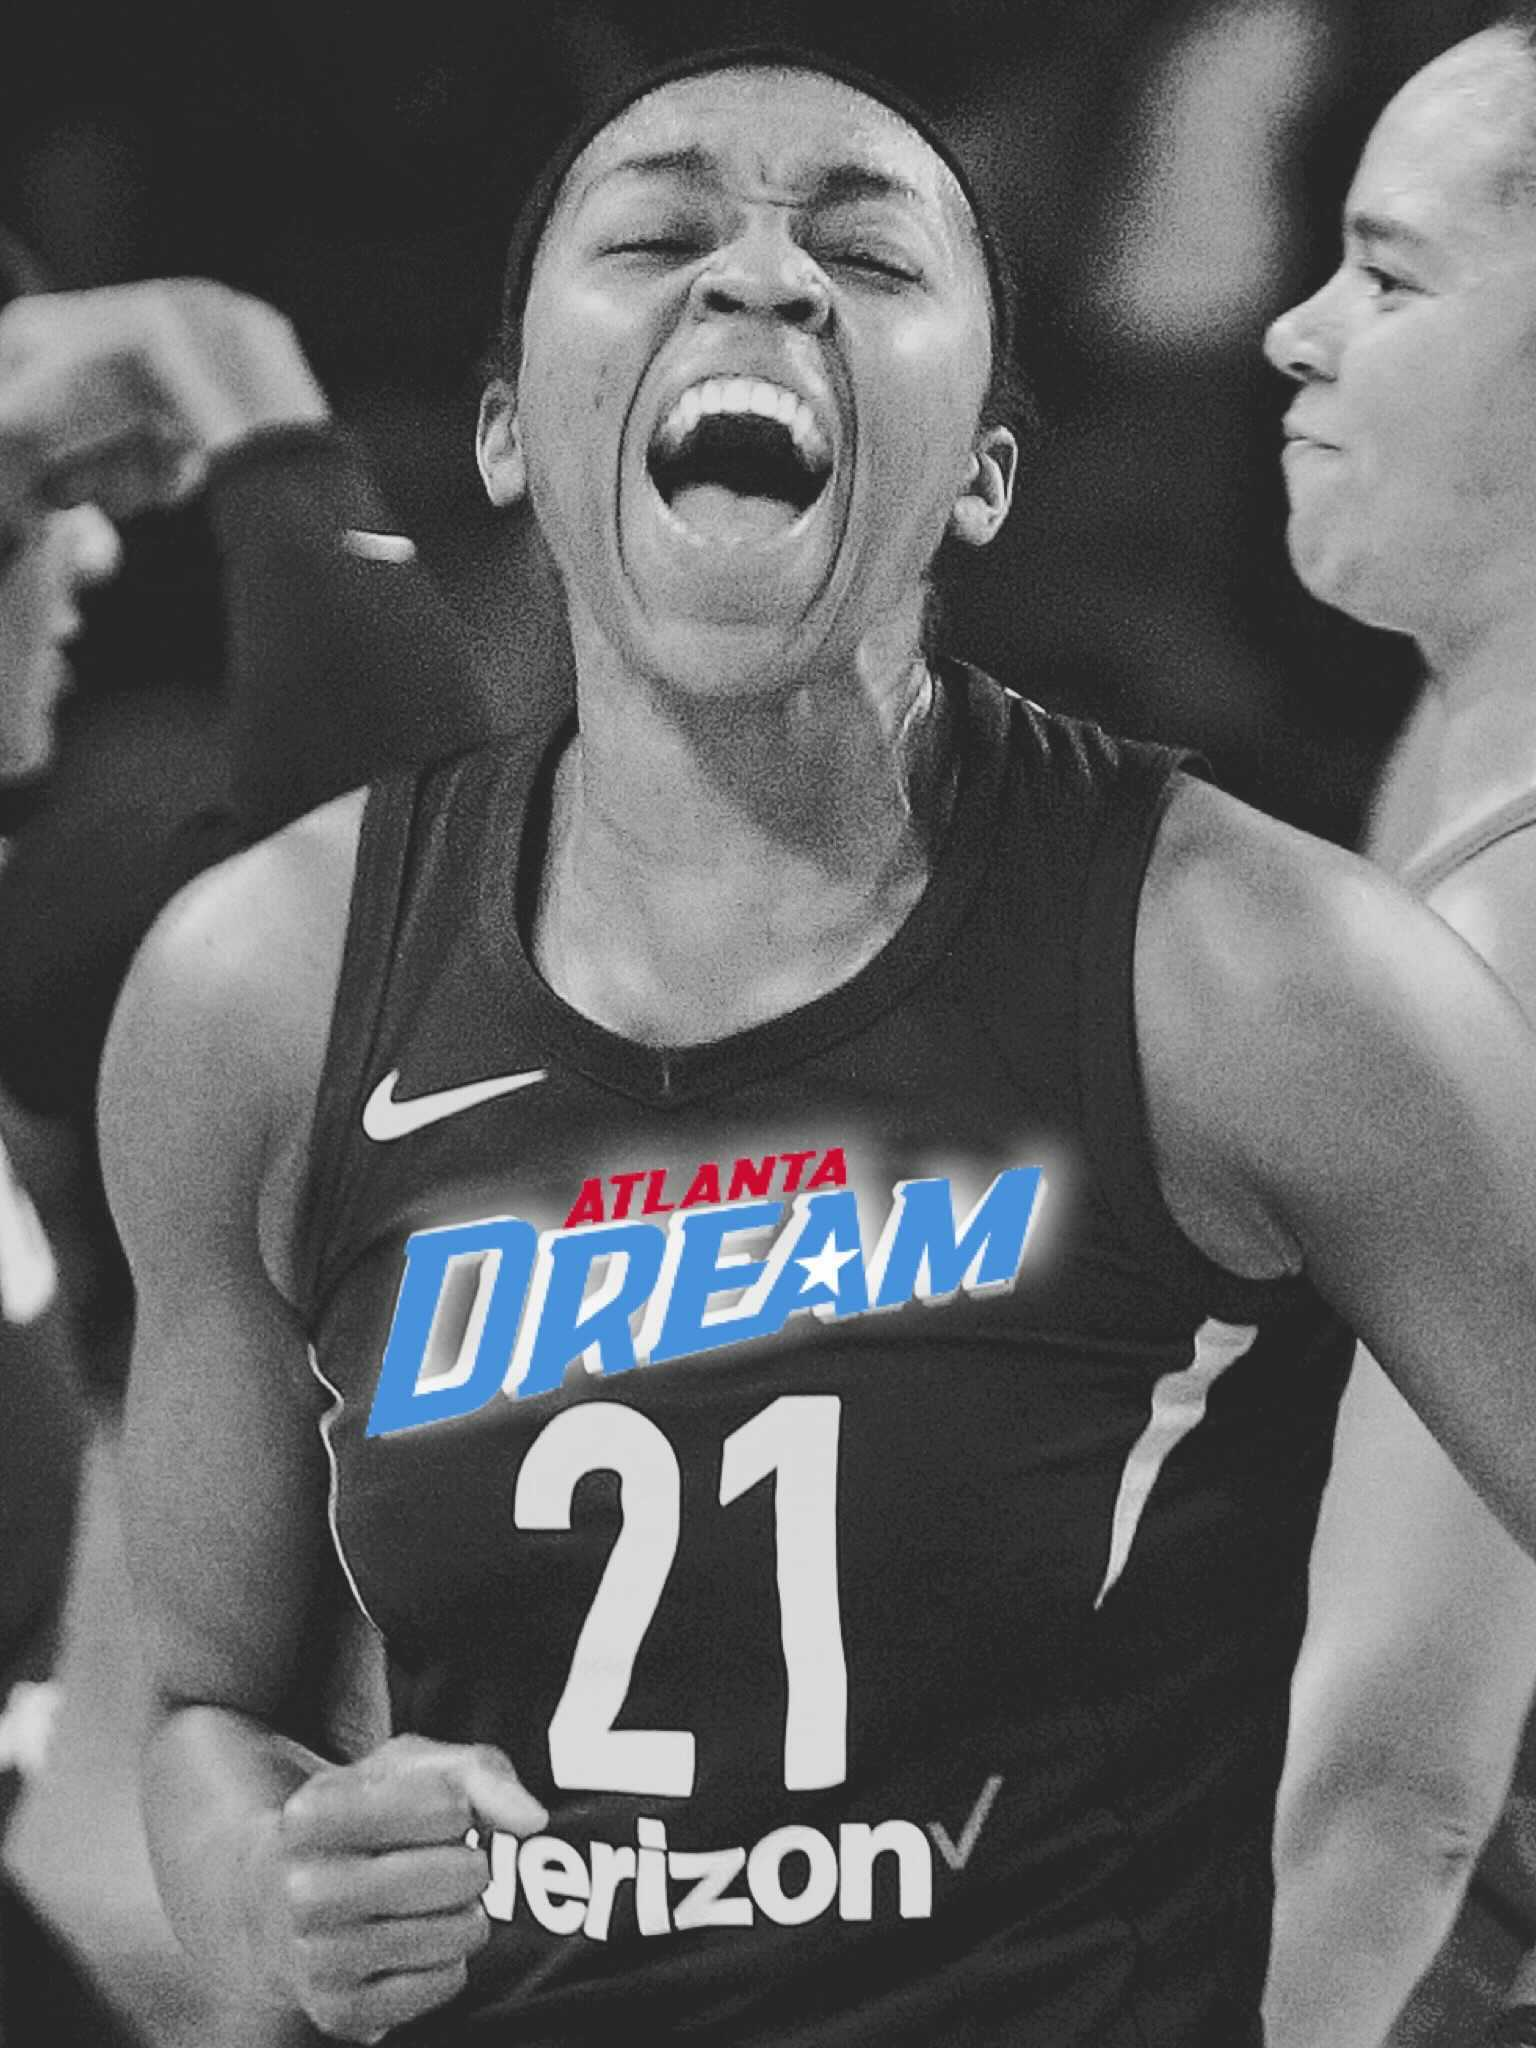 Renee Montgomery became the first former WNBA player to hold an ownership and executive role, buying a portion of the Atlanta Dream last week.